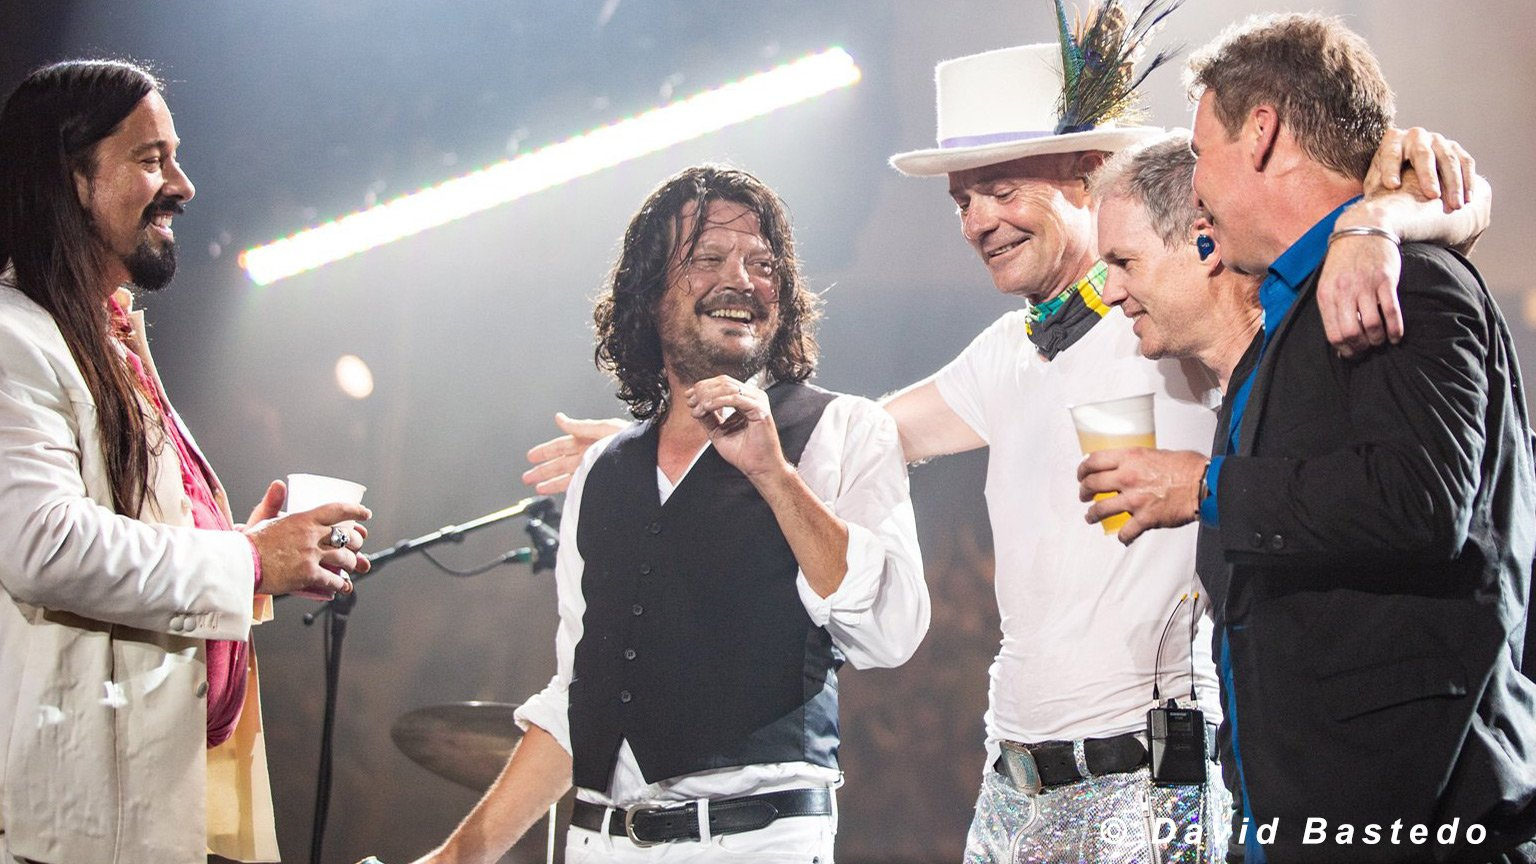 New Authorized images of The Tragically Hip